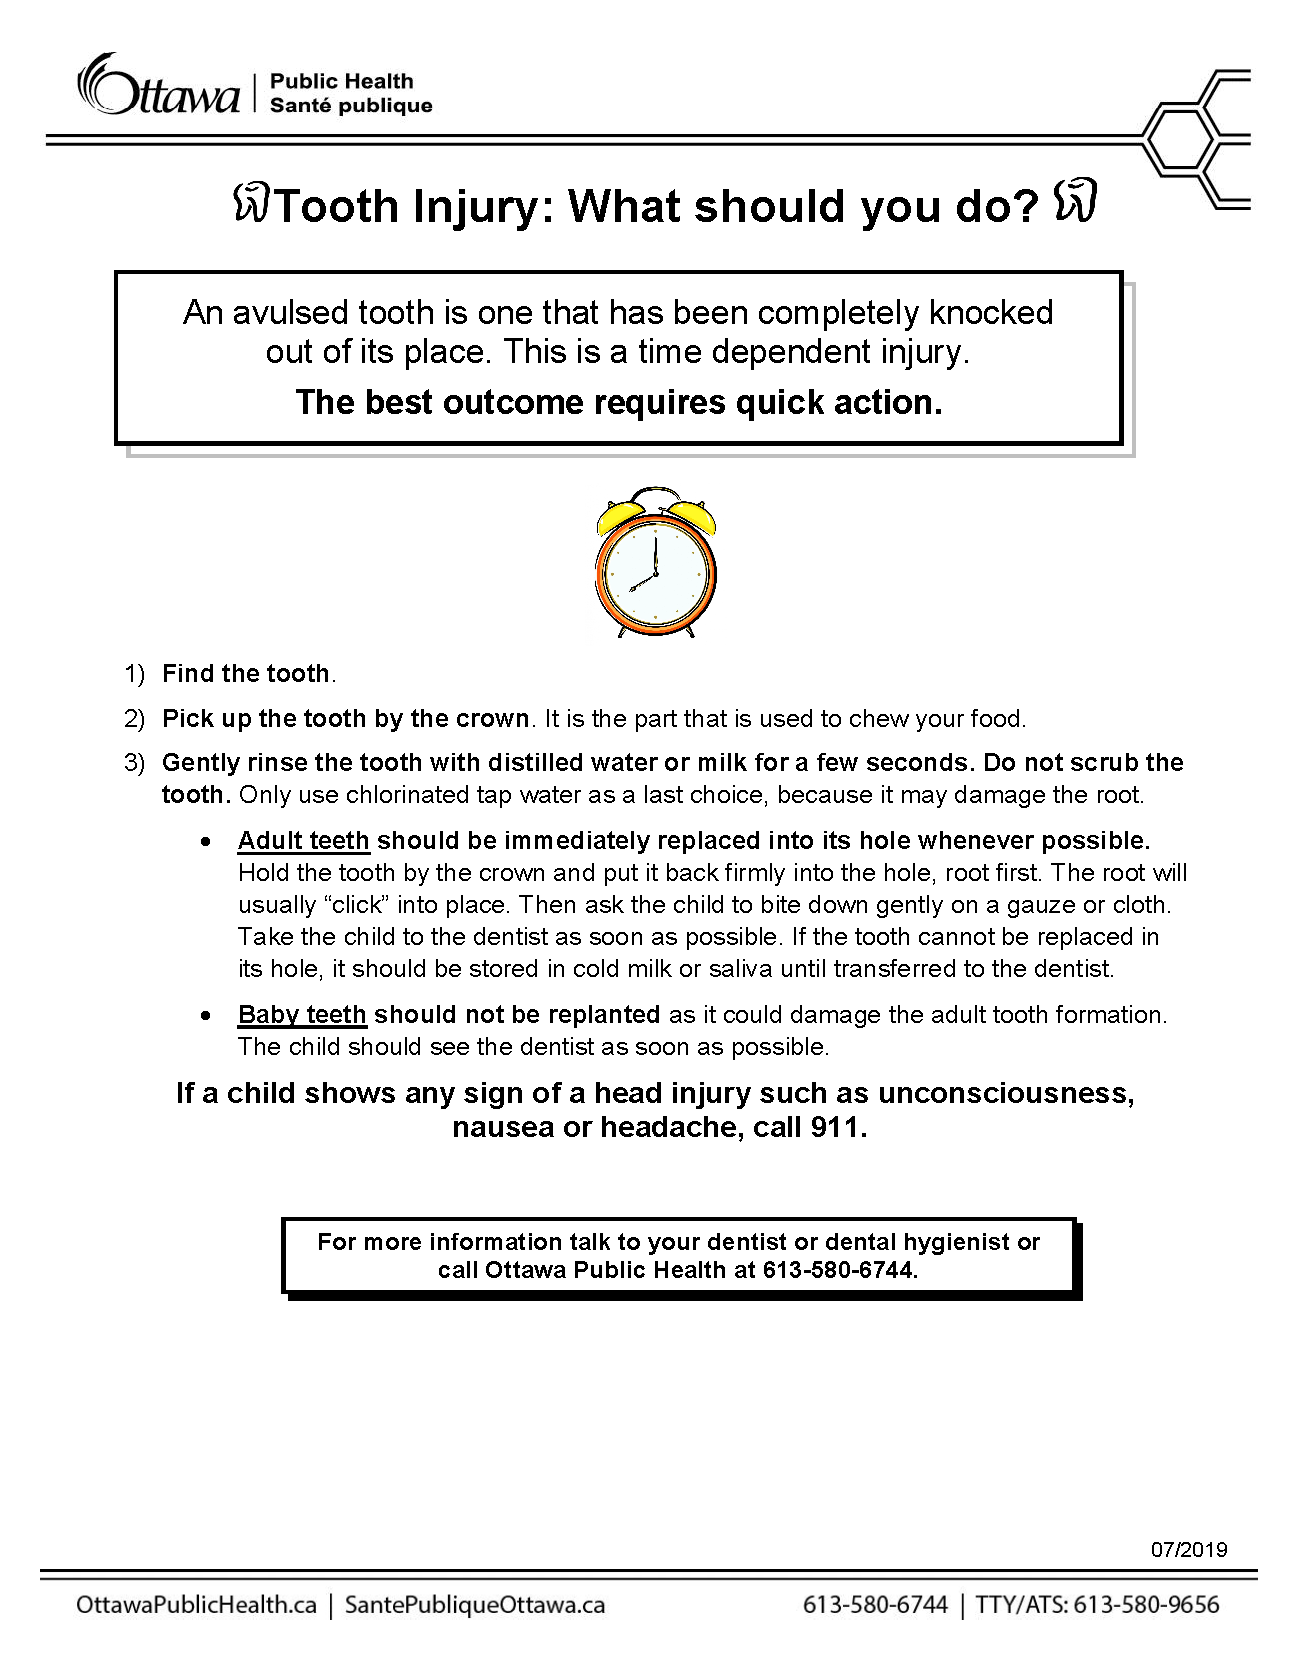 factsheet that covers the steps to take when you have a tooth injury